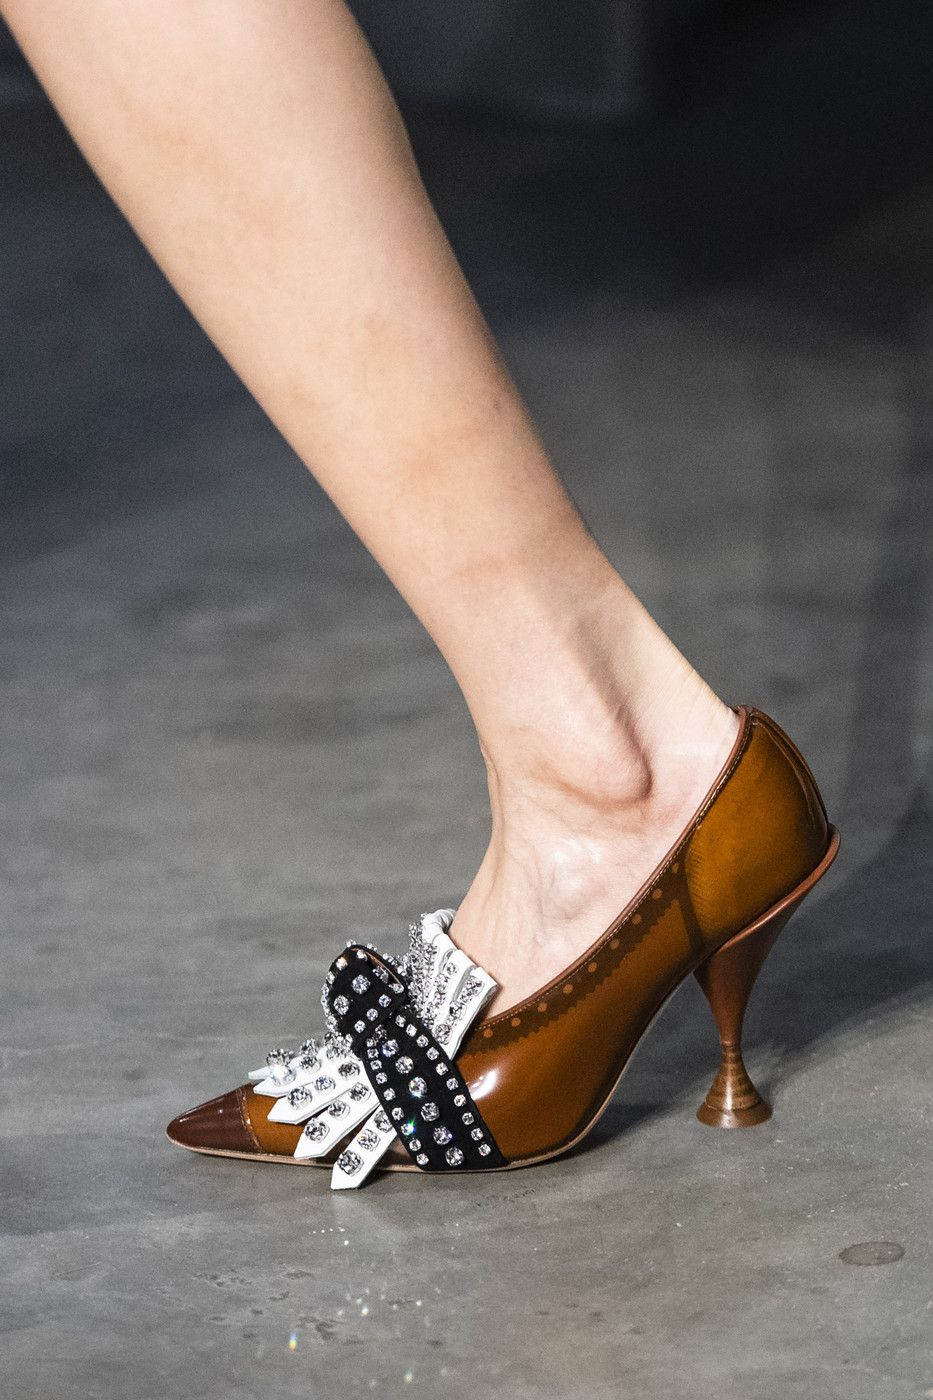 Pin on Shoes with great design